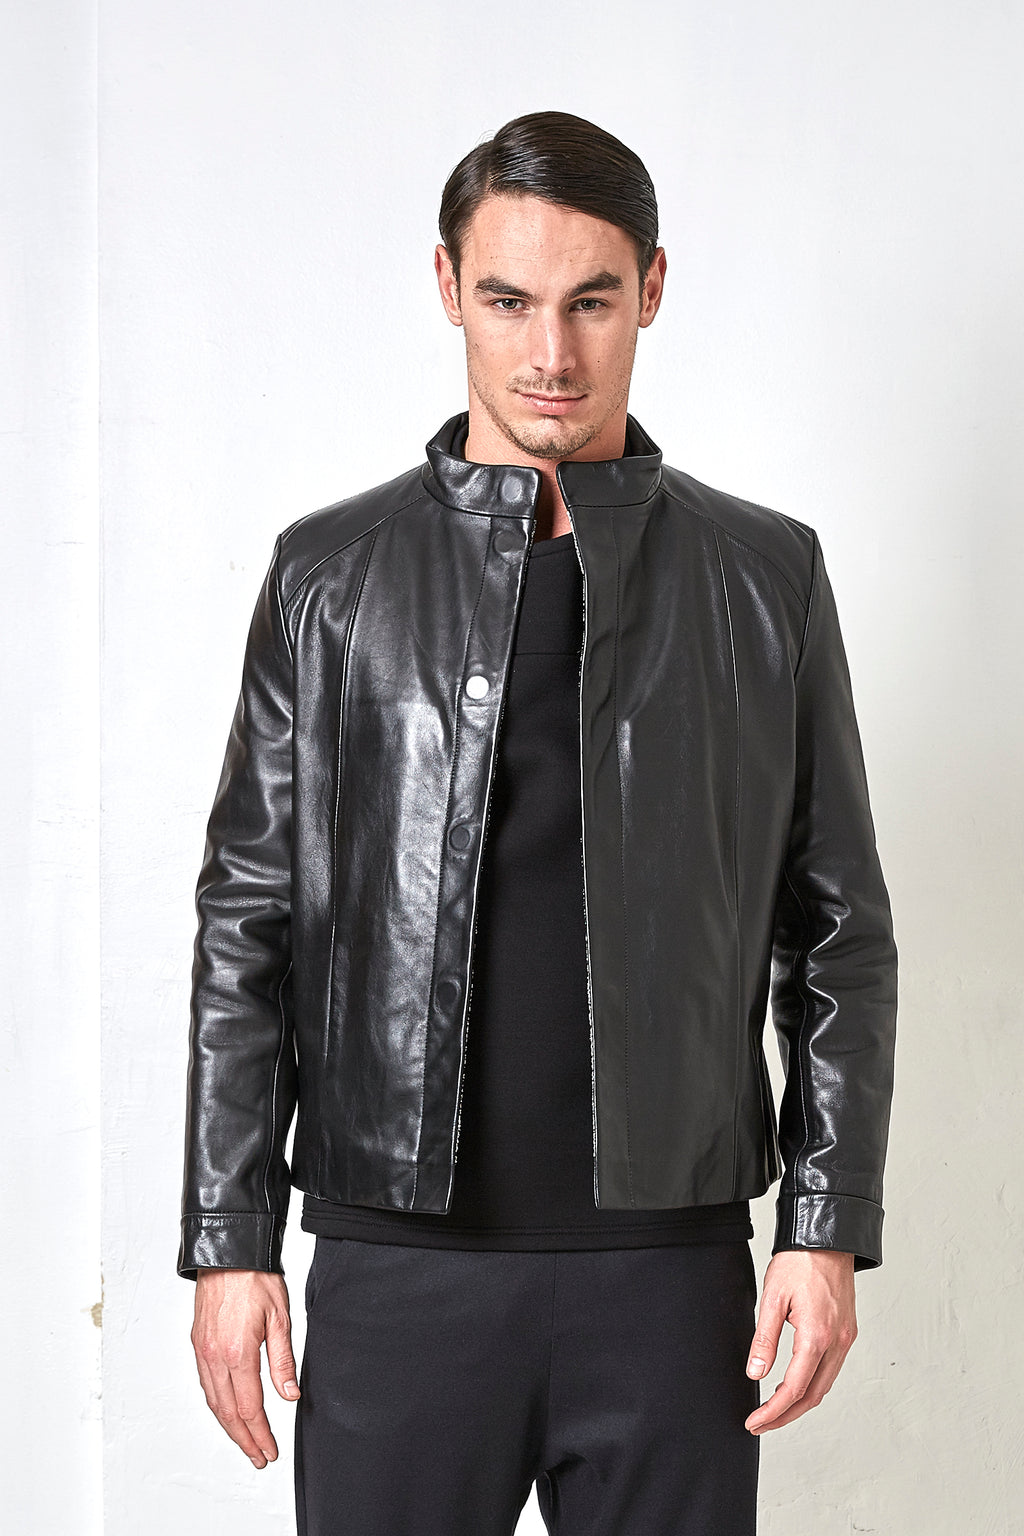 Sébastien Blondin veste jacket cuir leather chic été summer noir black créateur designer nouveau new basique basic mode fashion homme man men men's world